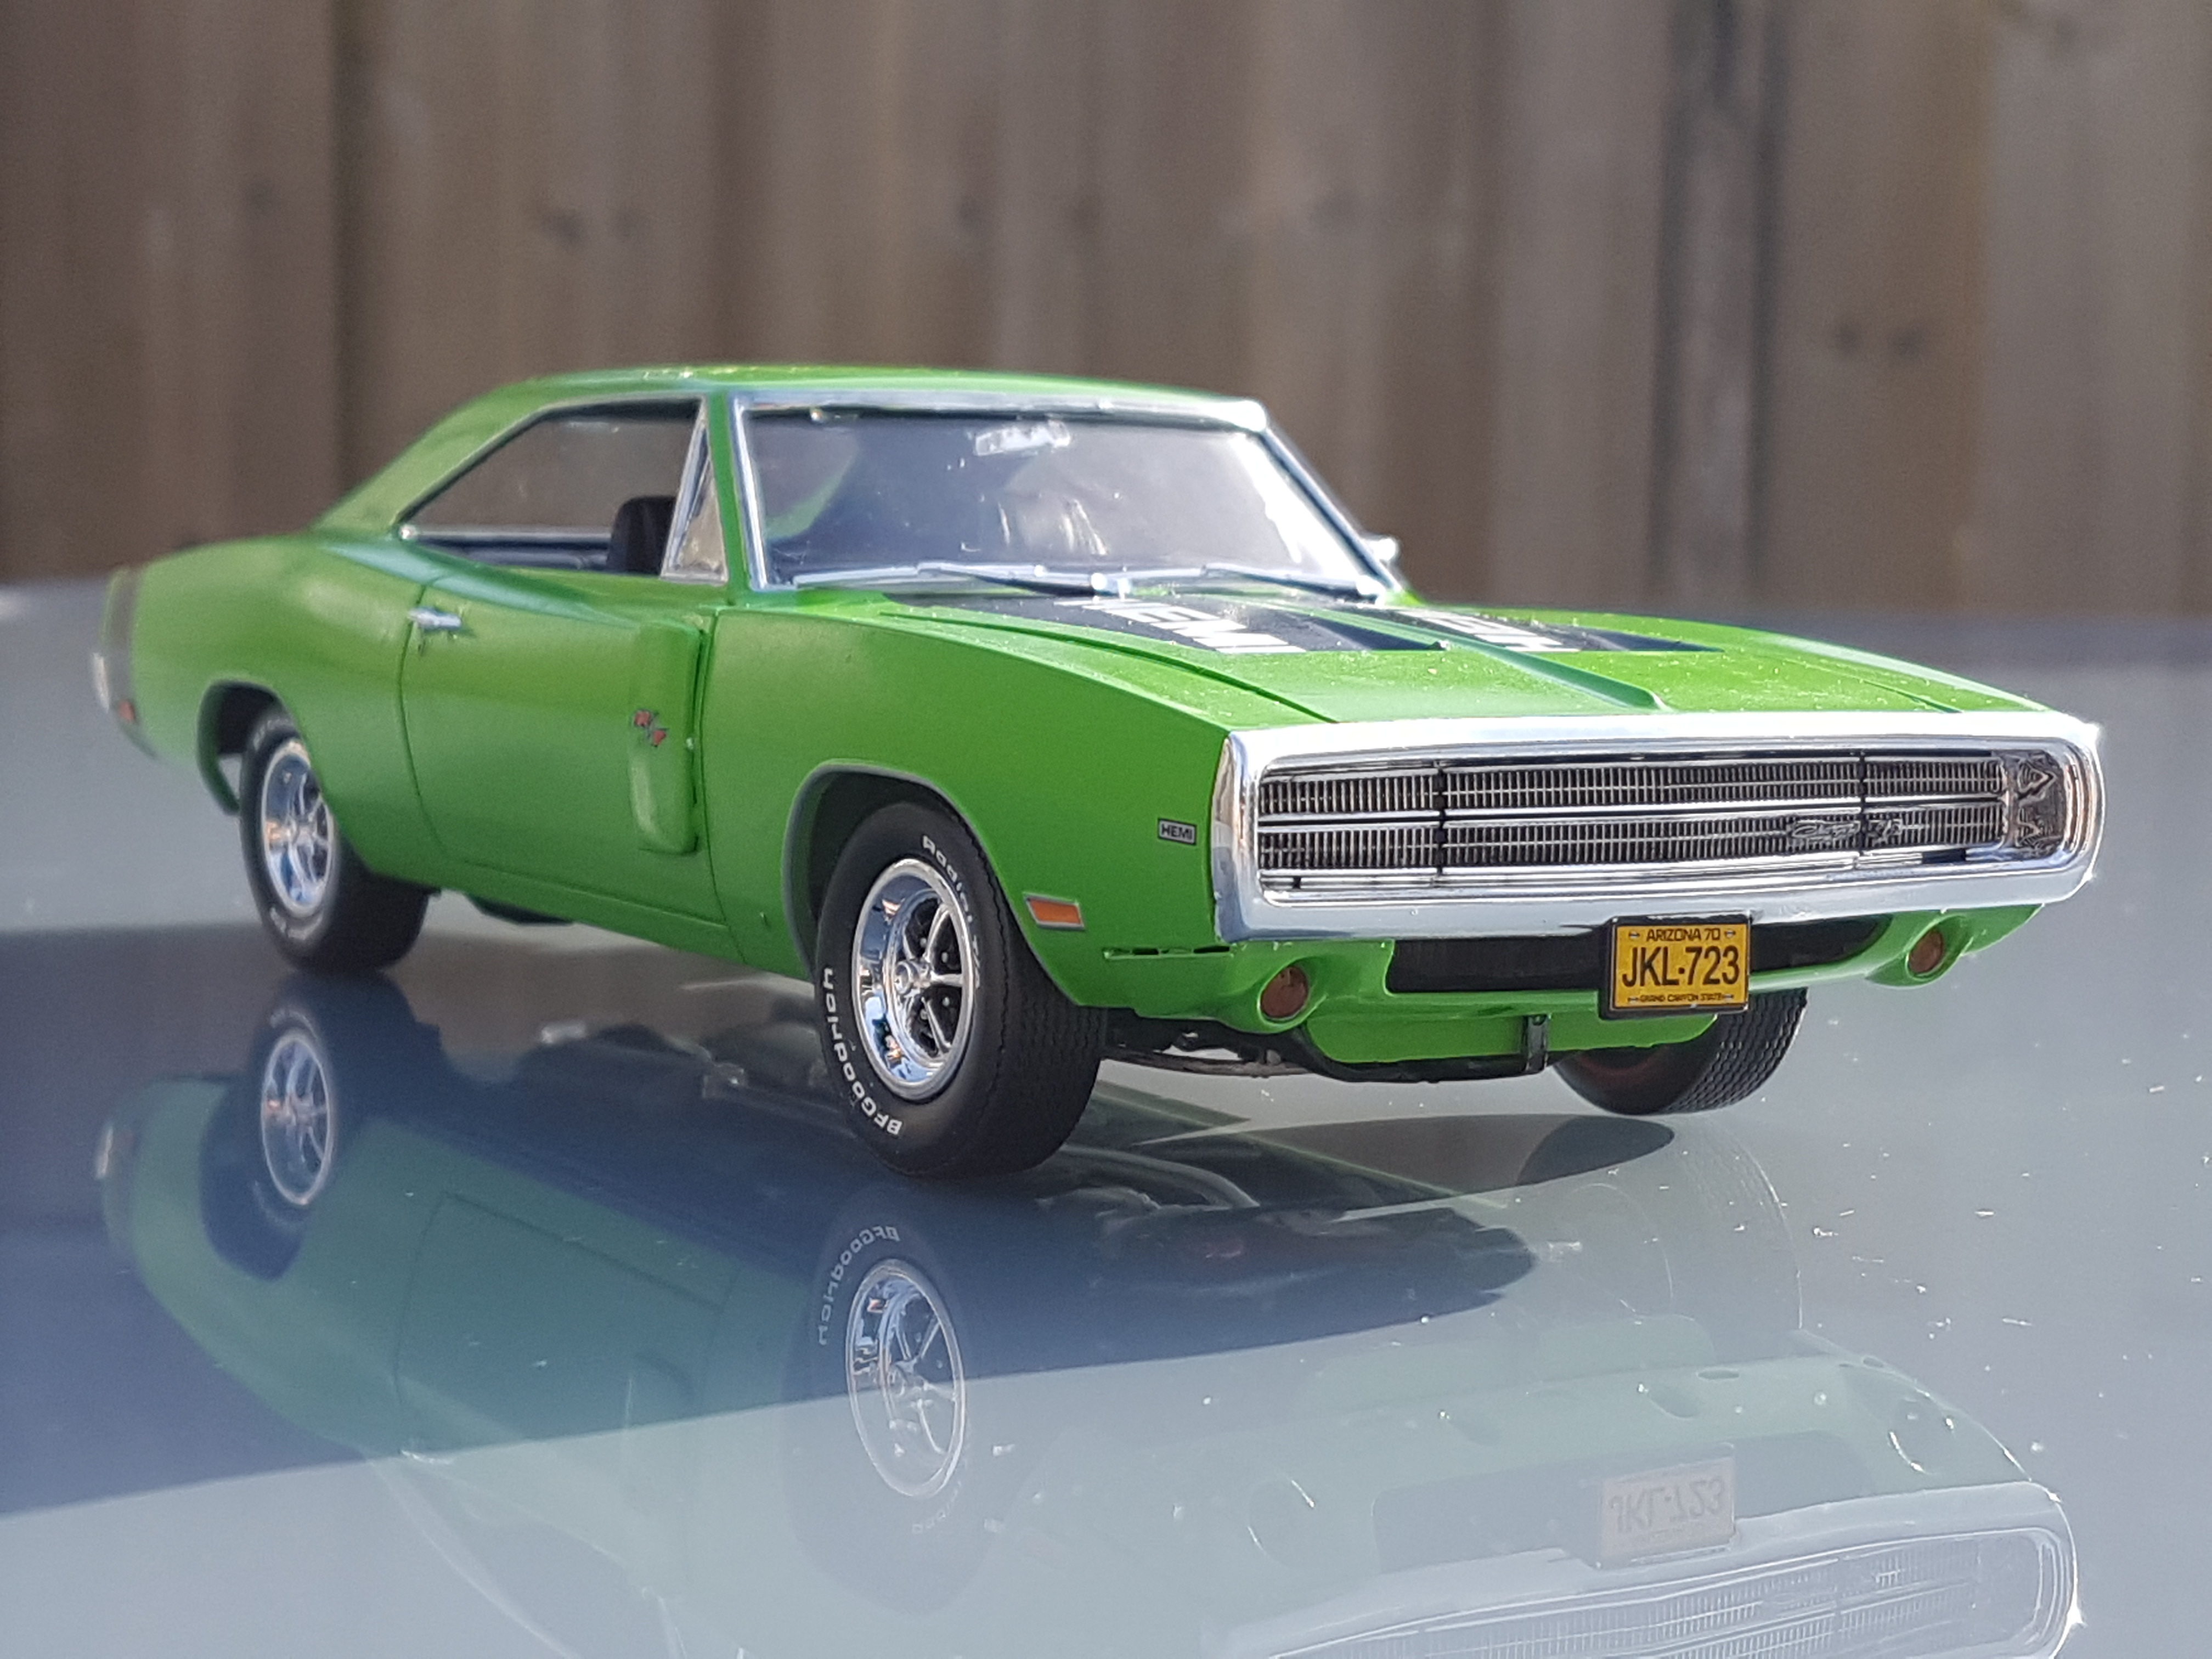 1970 dodge charger r t 426 hemi revell rays kits. Black Bedroom Furniture Sets. Home Design Ideas